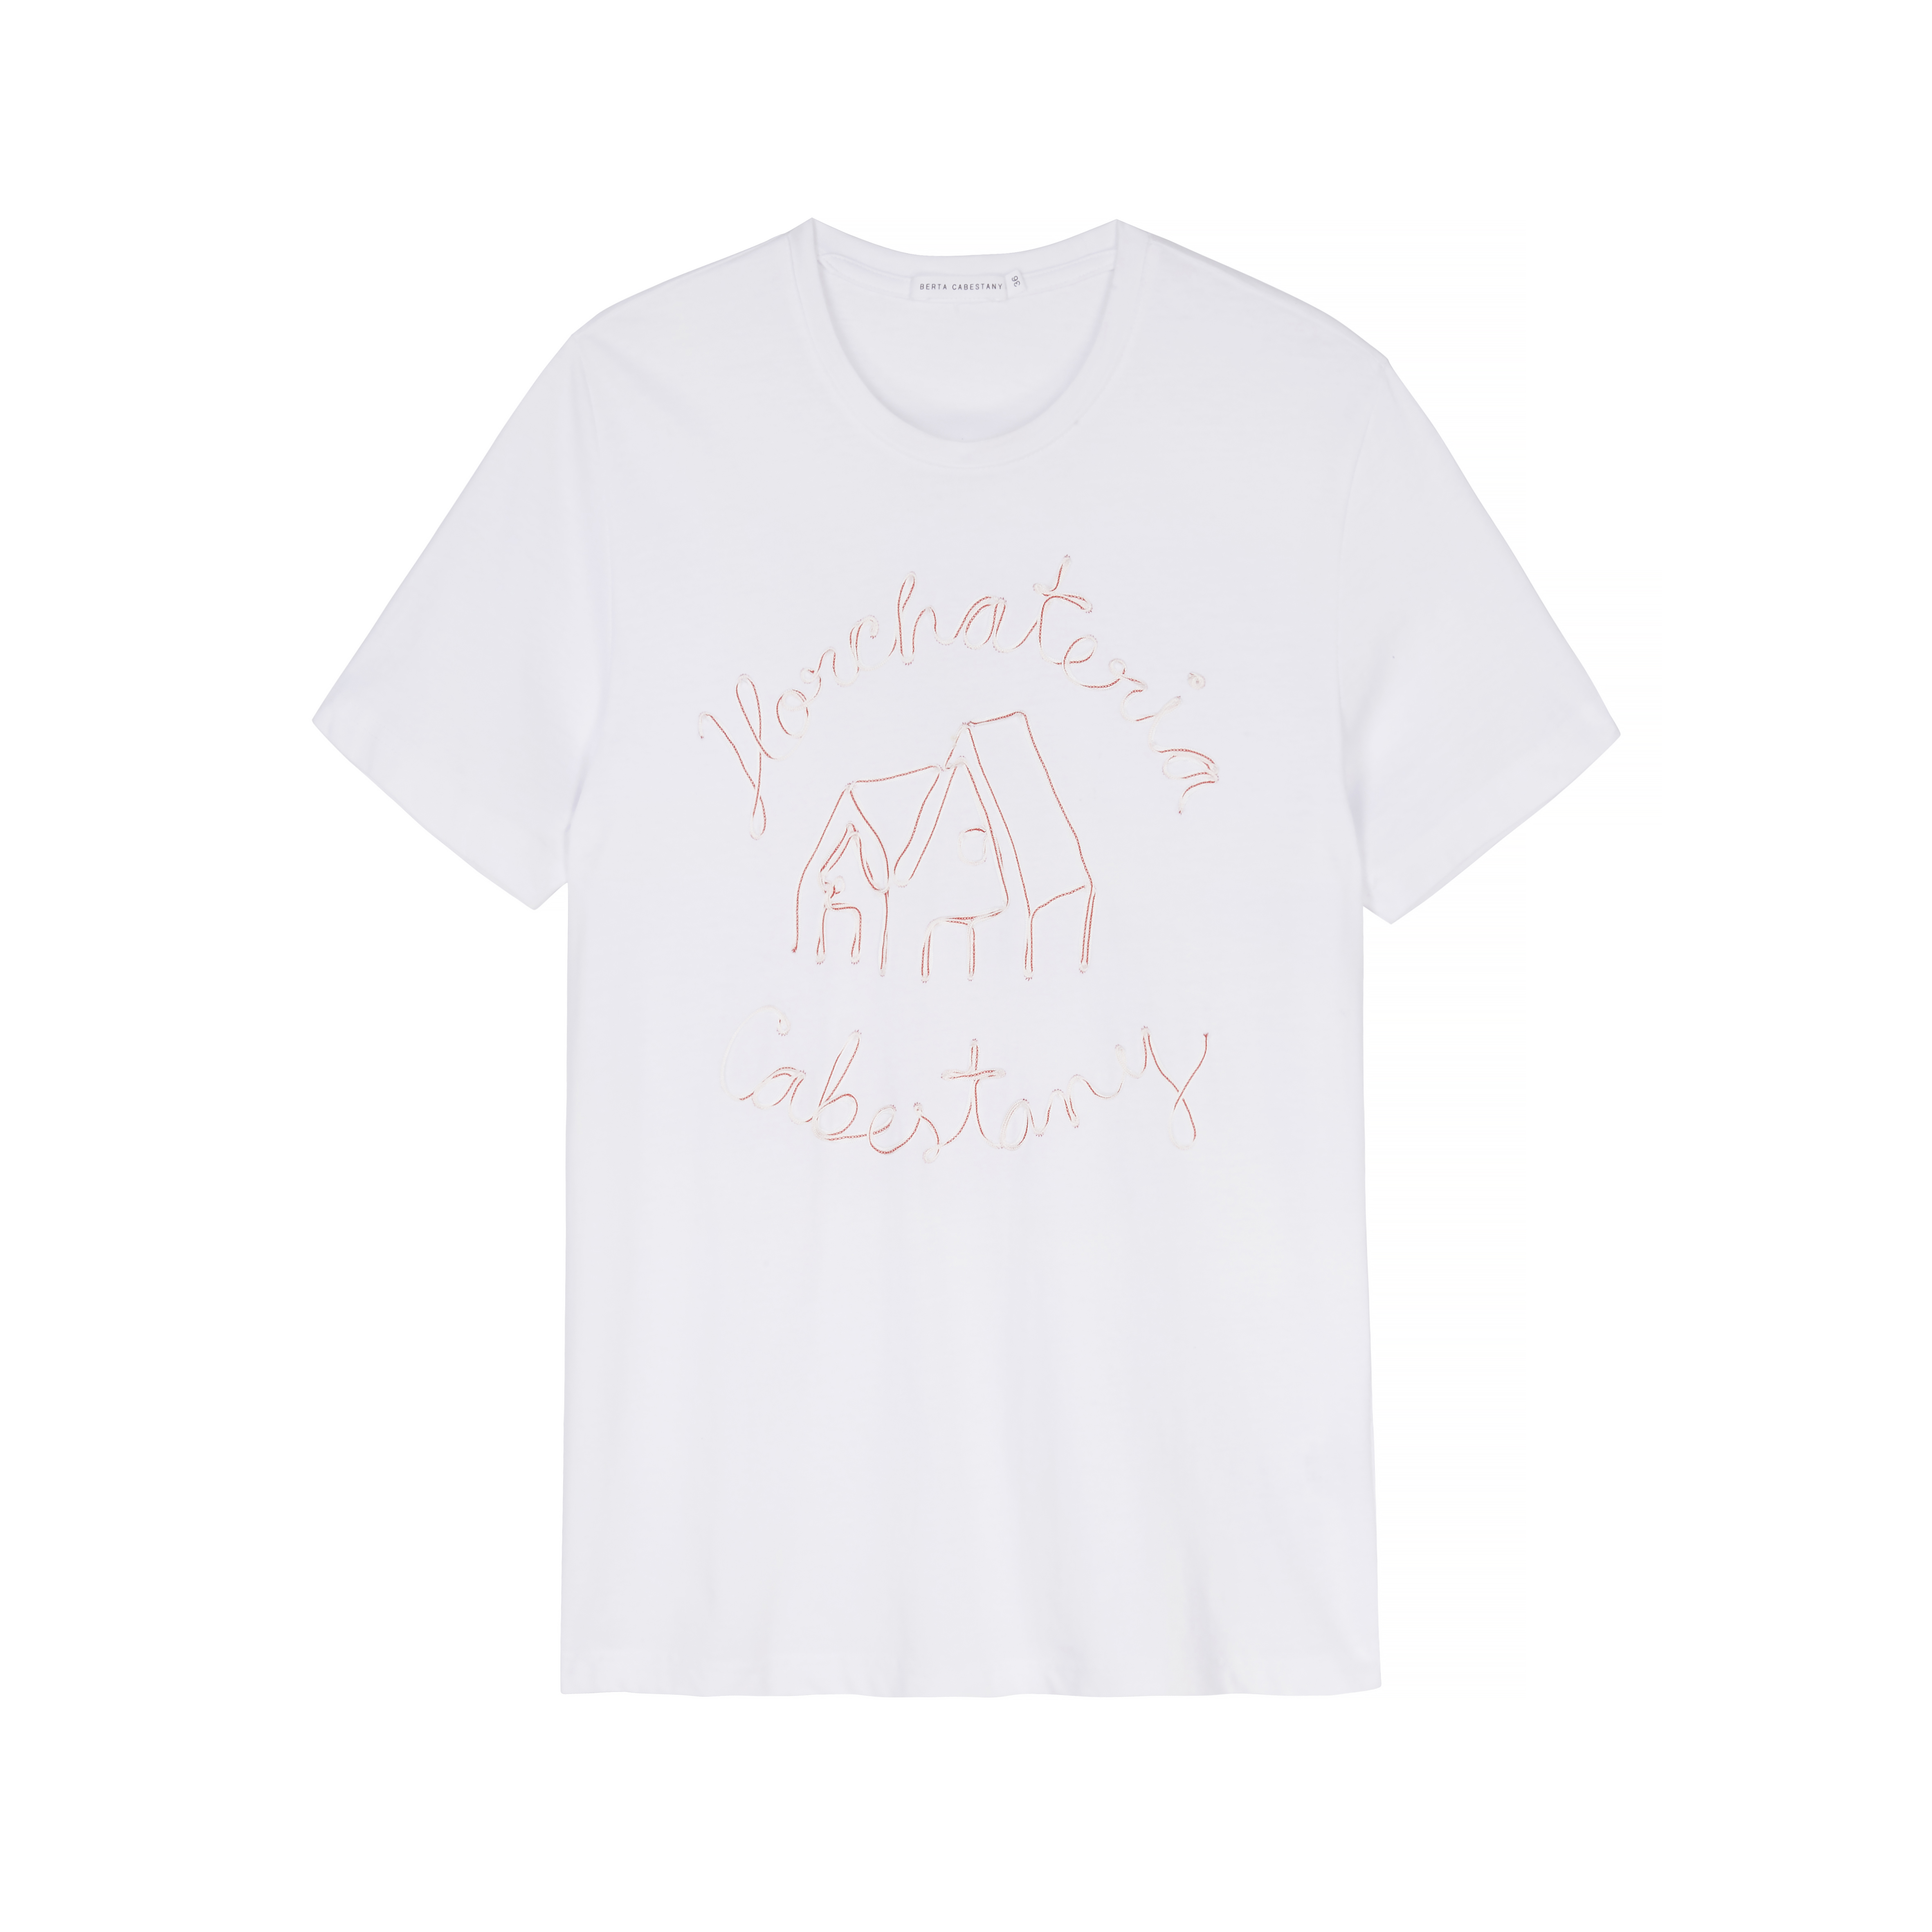 Mazapan T-Shirt - White by Berta Cabestany on curated-crowd.com